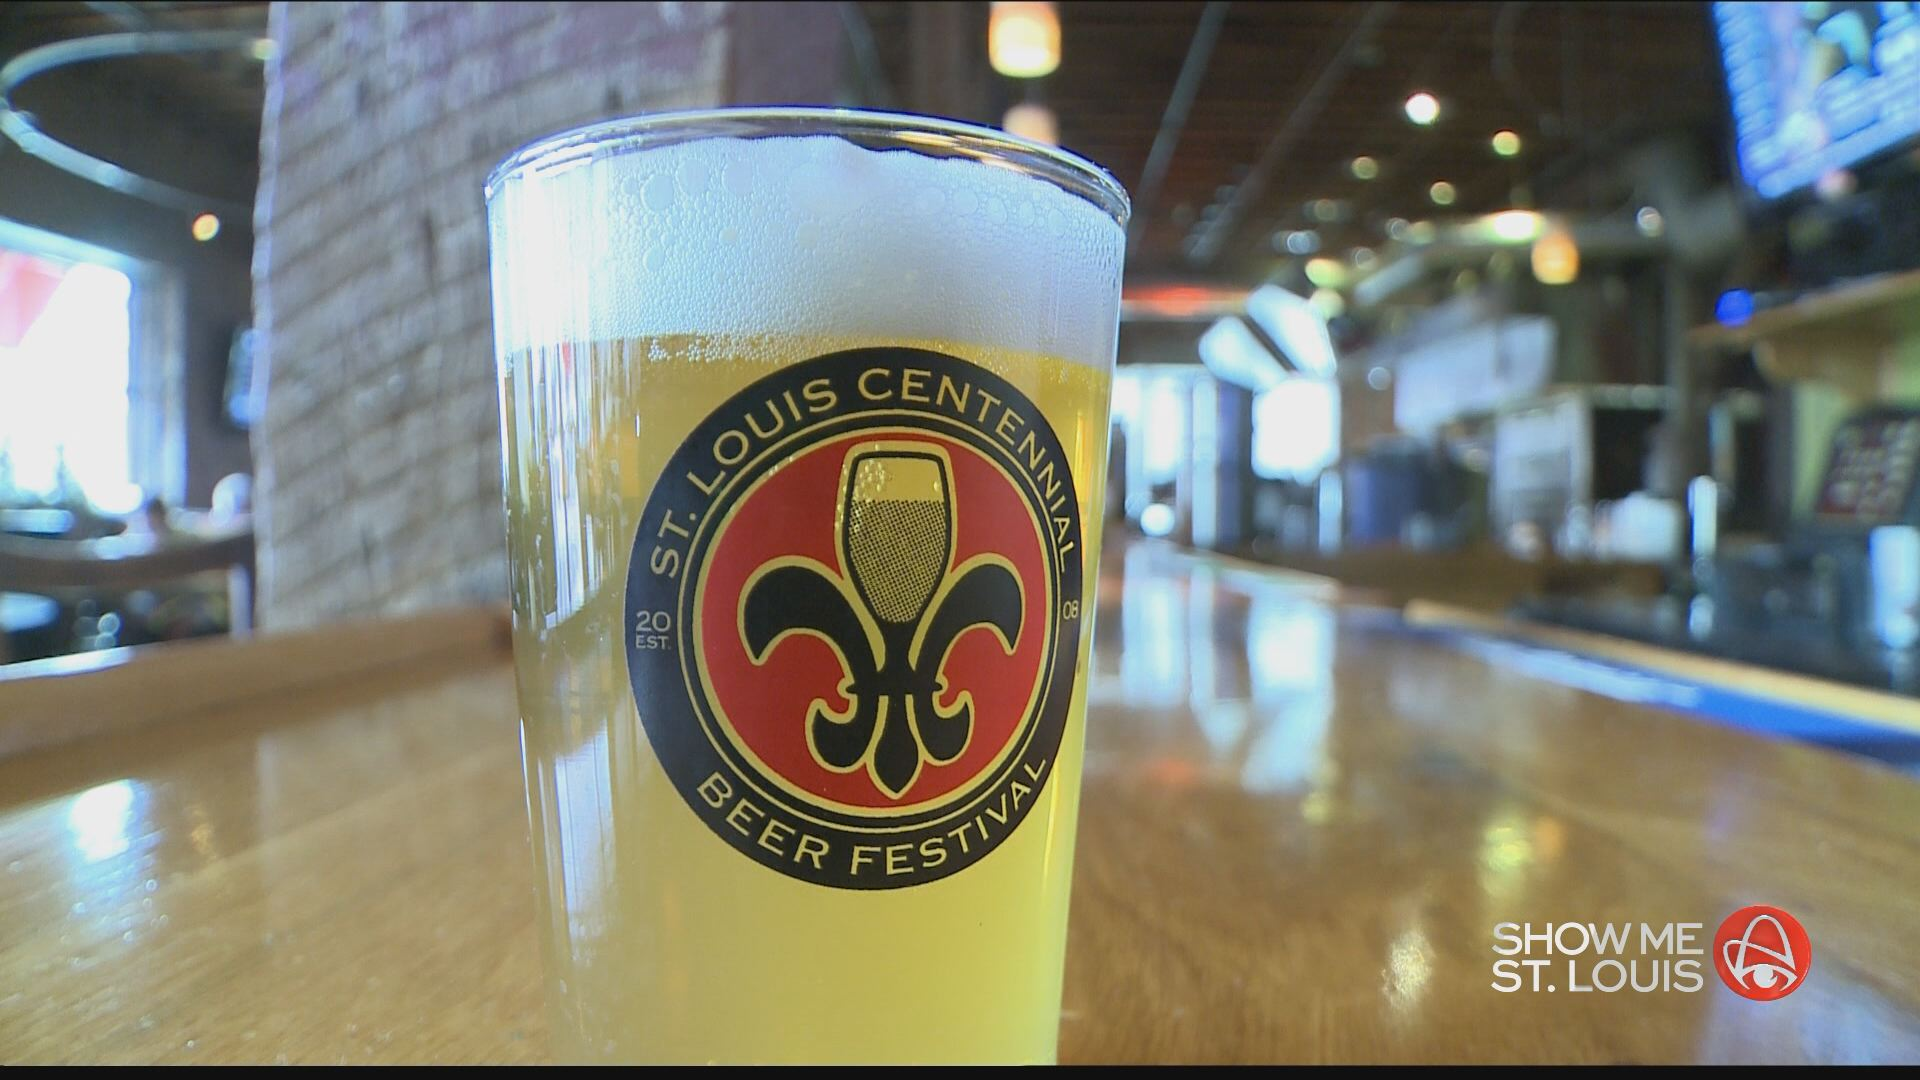 The centennial beer festival is this weekend for St louis home and garden show 2017